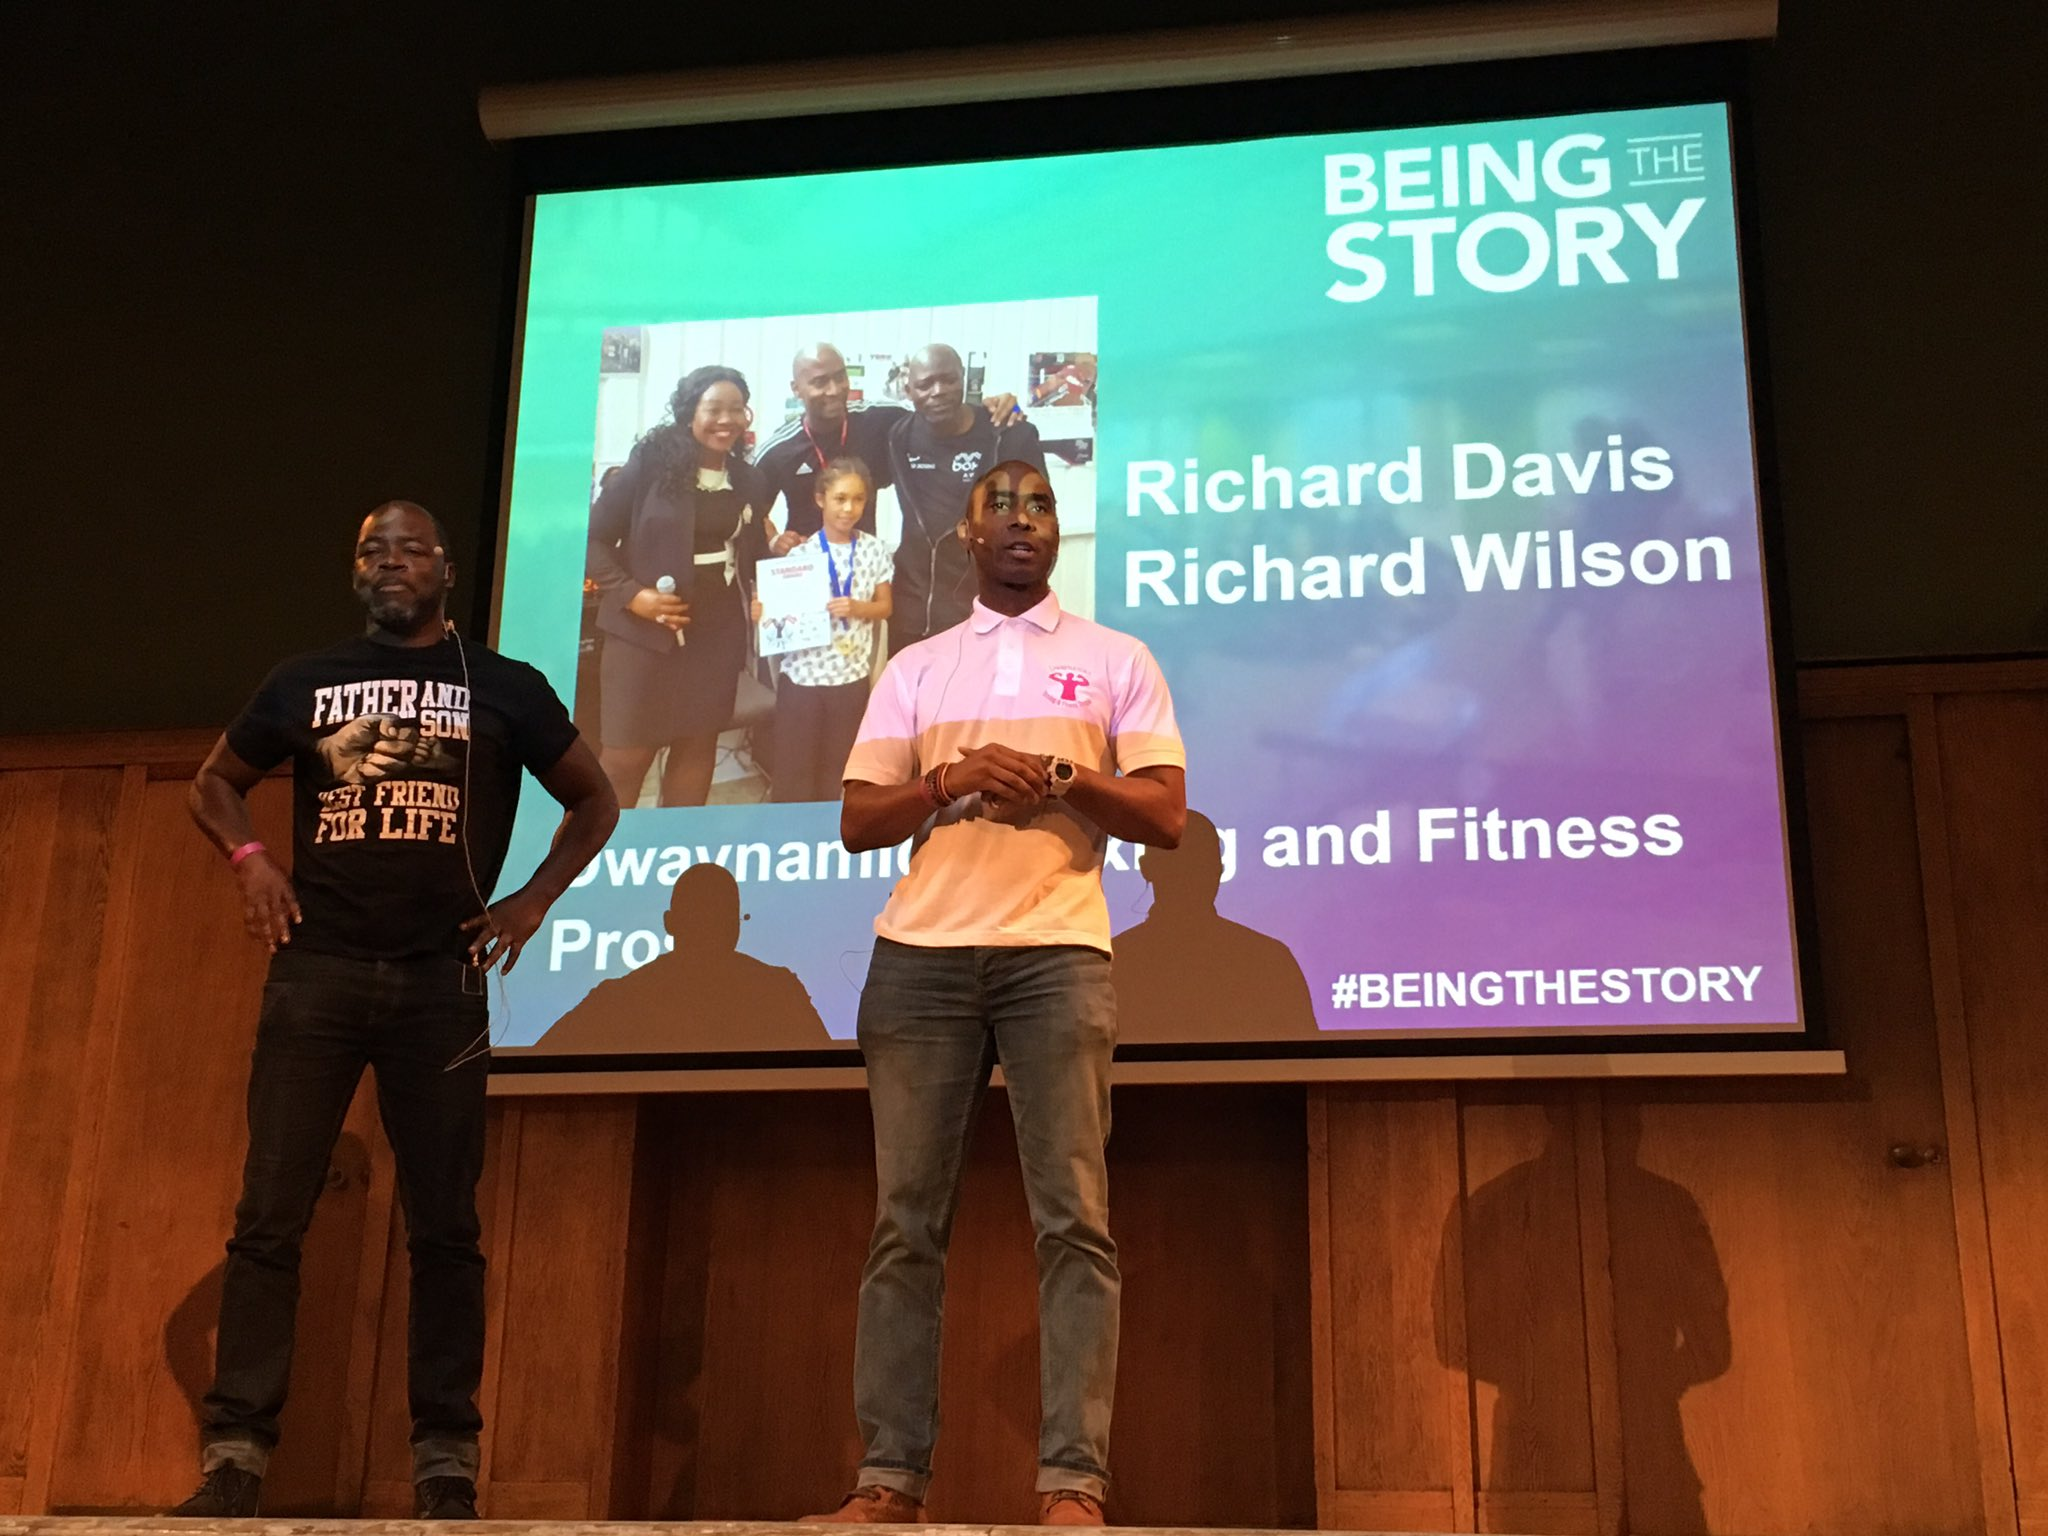 We loved R1 & R2 from @dwaynamics getting us ready for the day at #BeingTheStory https://t.co/d1Az8fsrBn